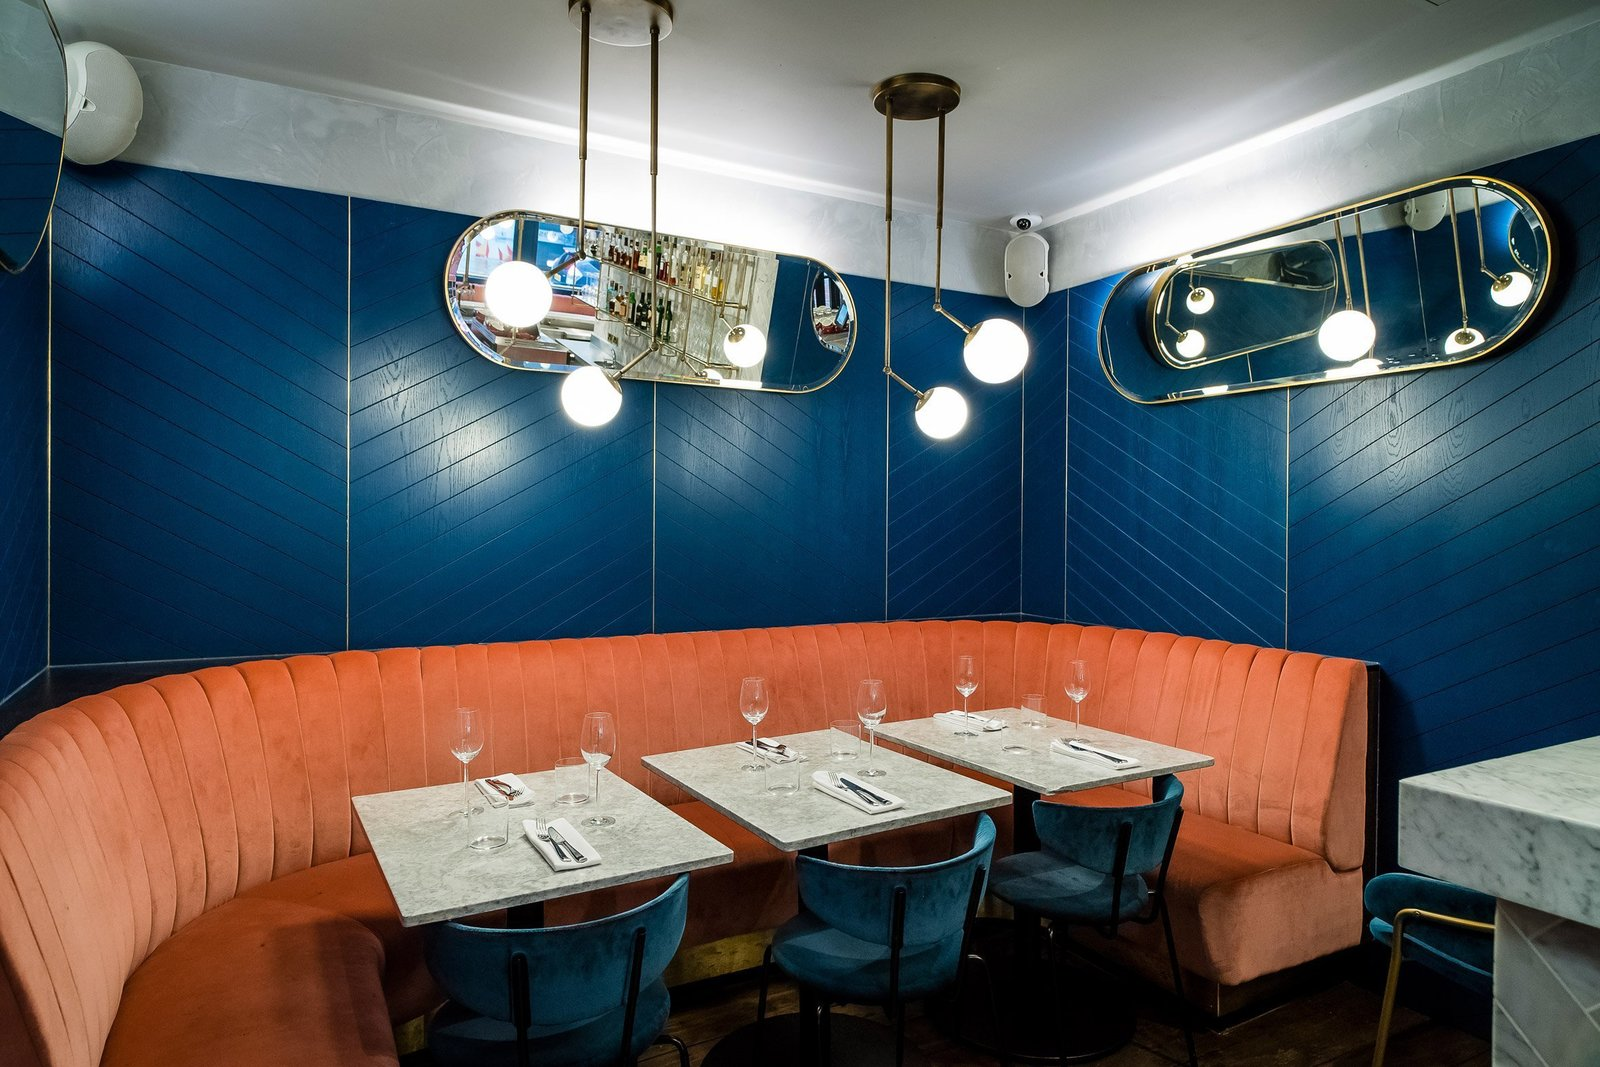 Photo 6 of 8 in A New Velvet- and Brass-Filled Restaurant That's Housed in a 19th-Century London Warehouse